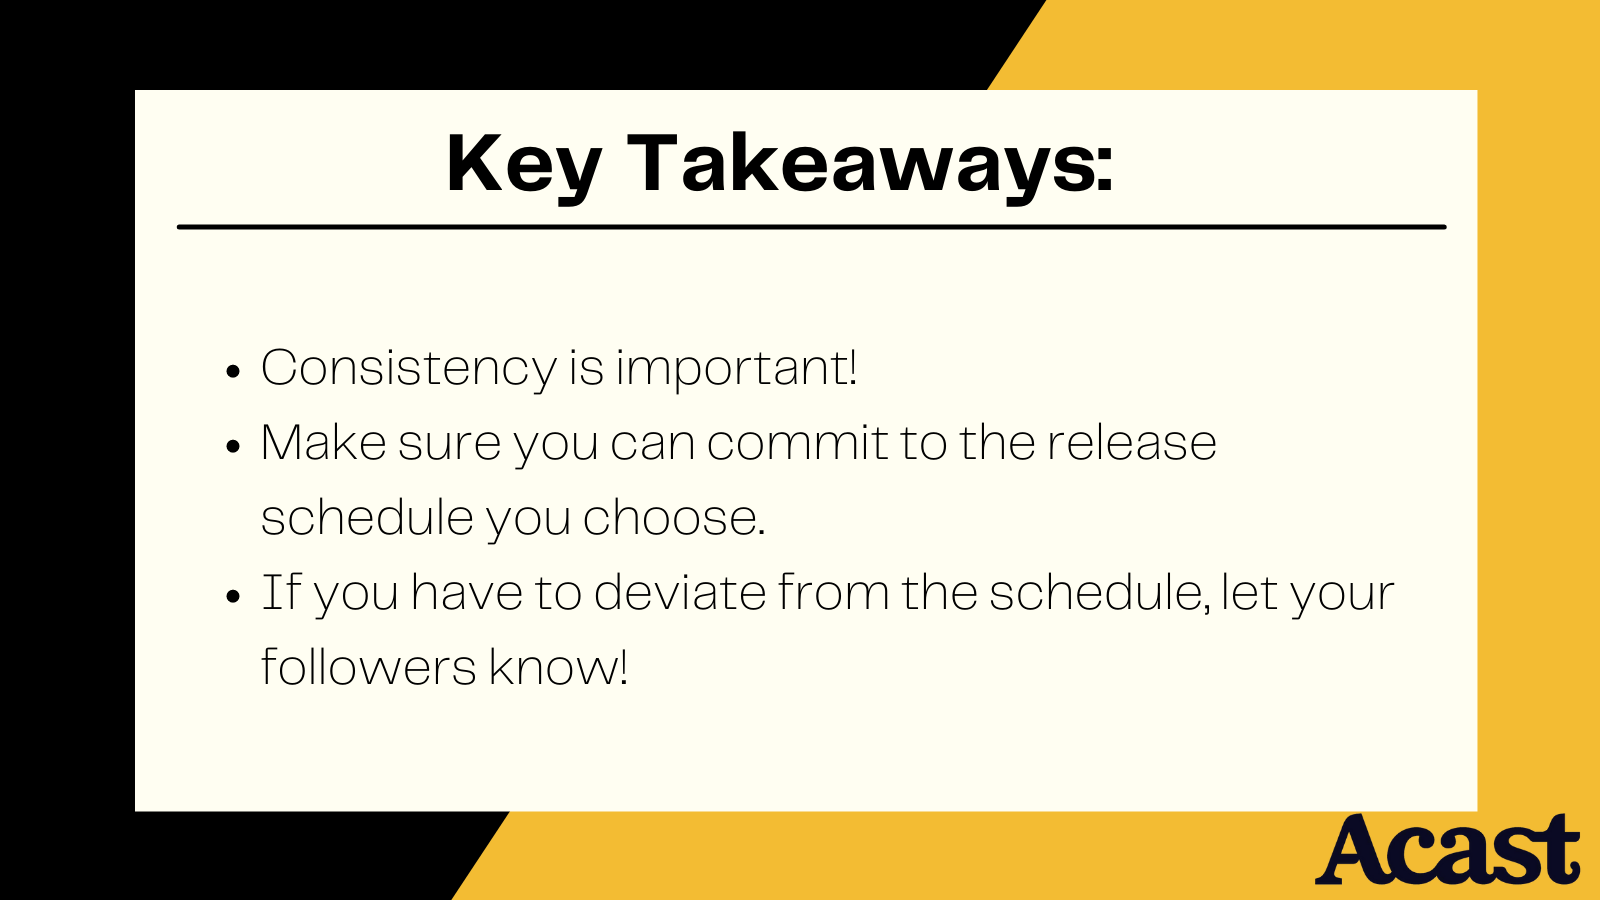 3 key takeaways for scheduling your podcast episode